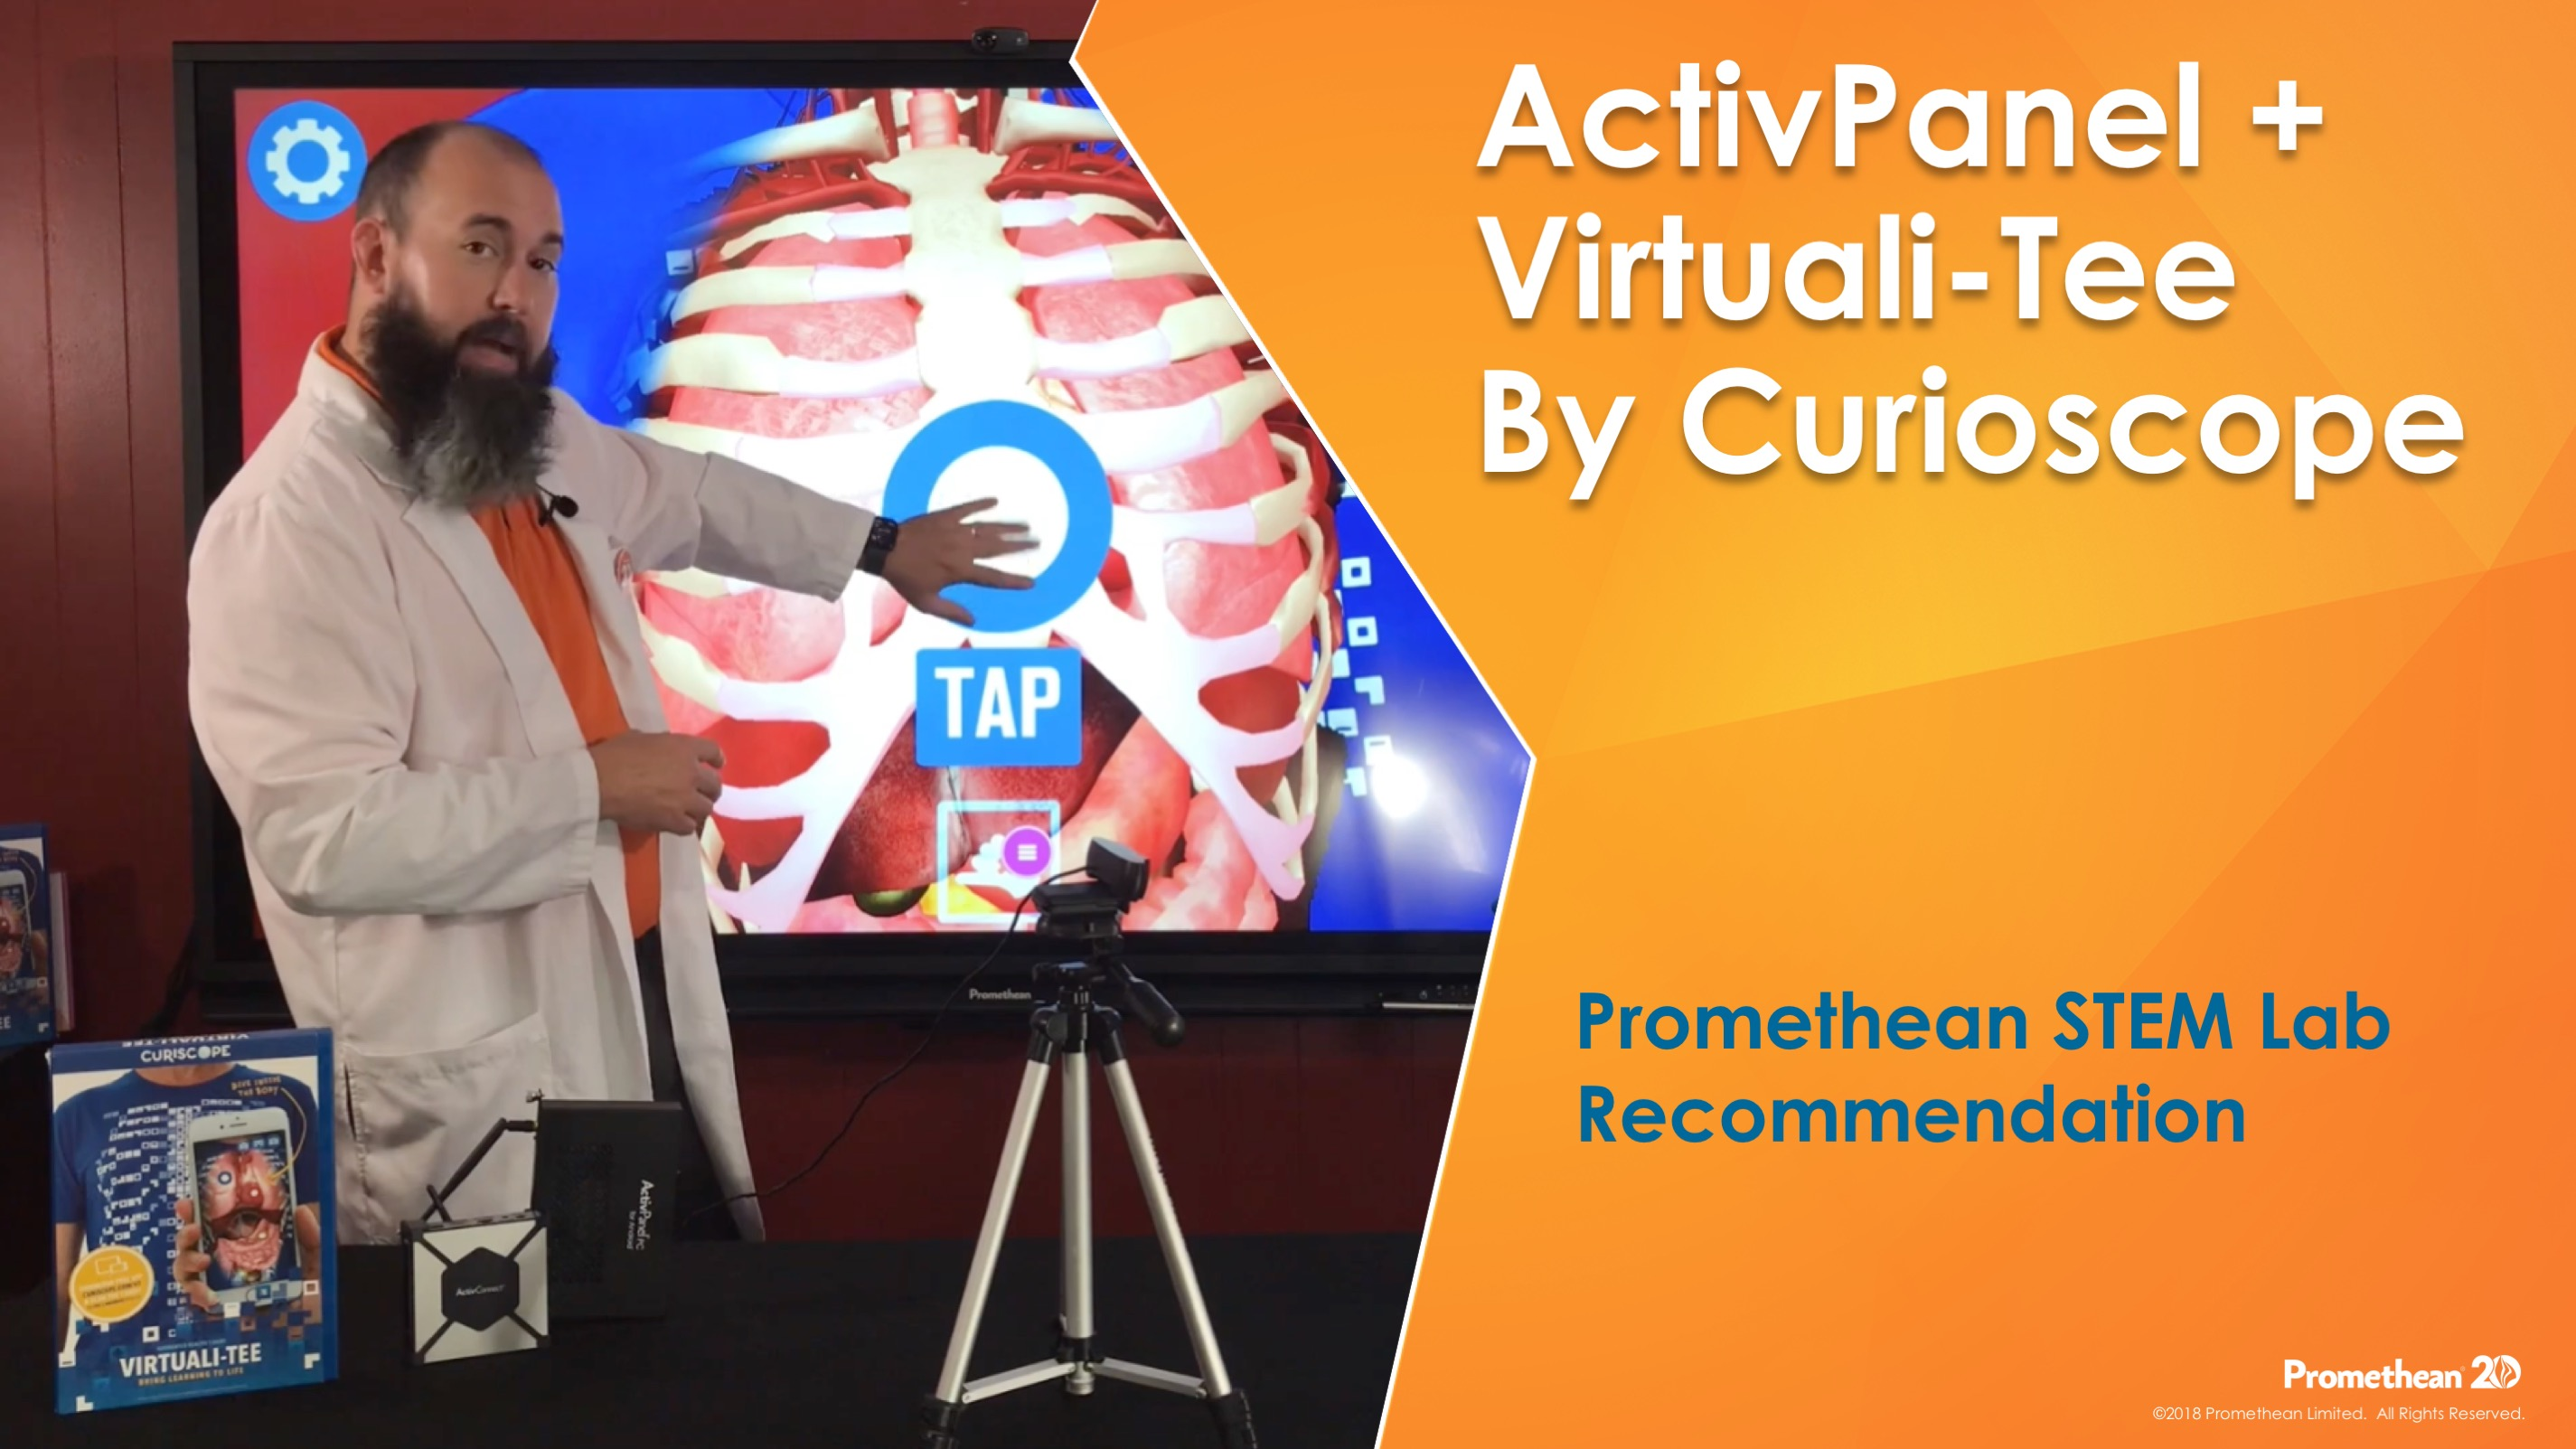 Virtuali-Tee by Curioscope with ActivPanel - Promethean STEM Feature (copy)